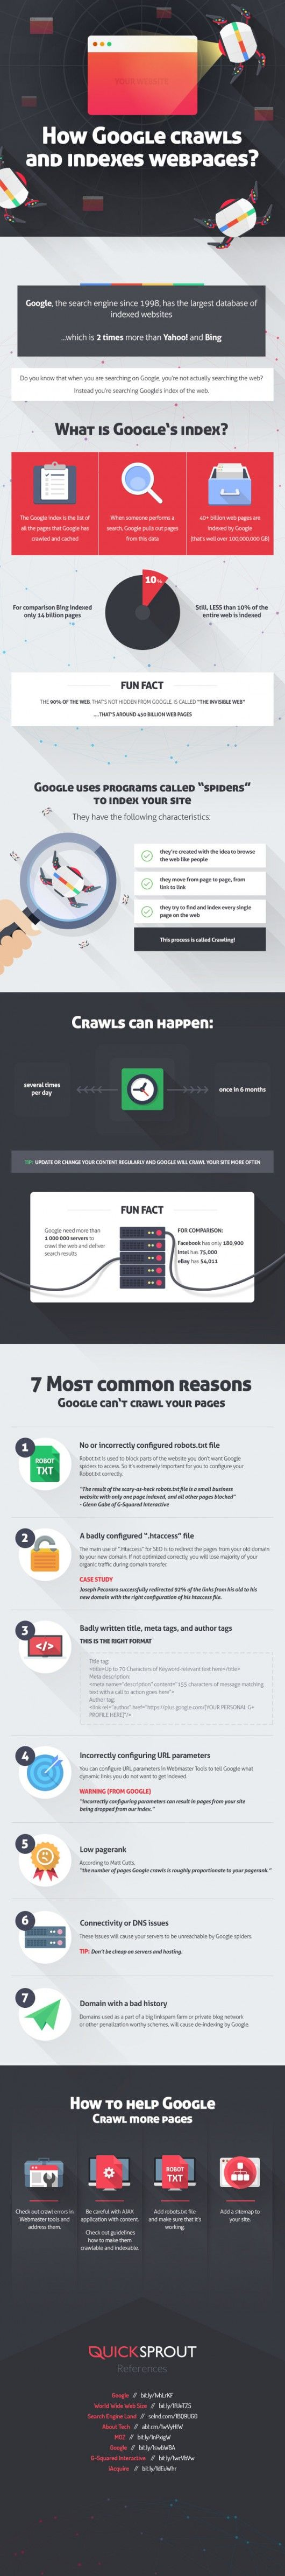 How Google crawls and indexes webpages by QuickSprout | Online Marketing News